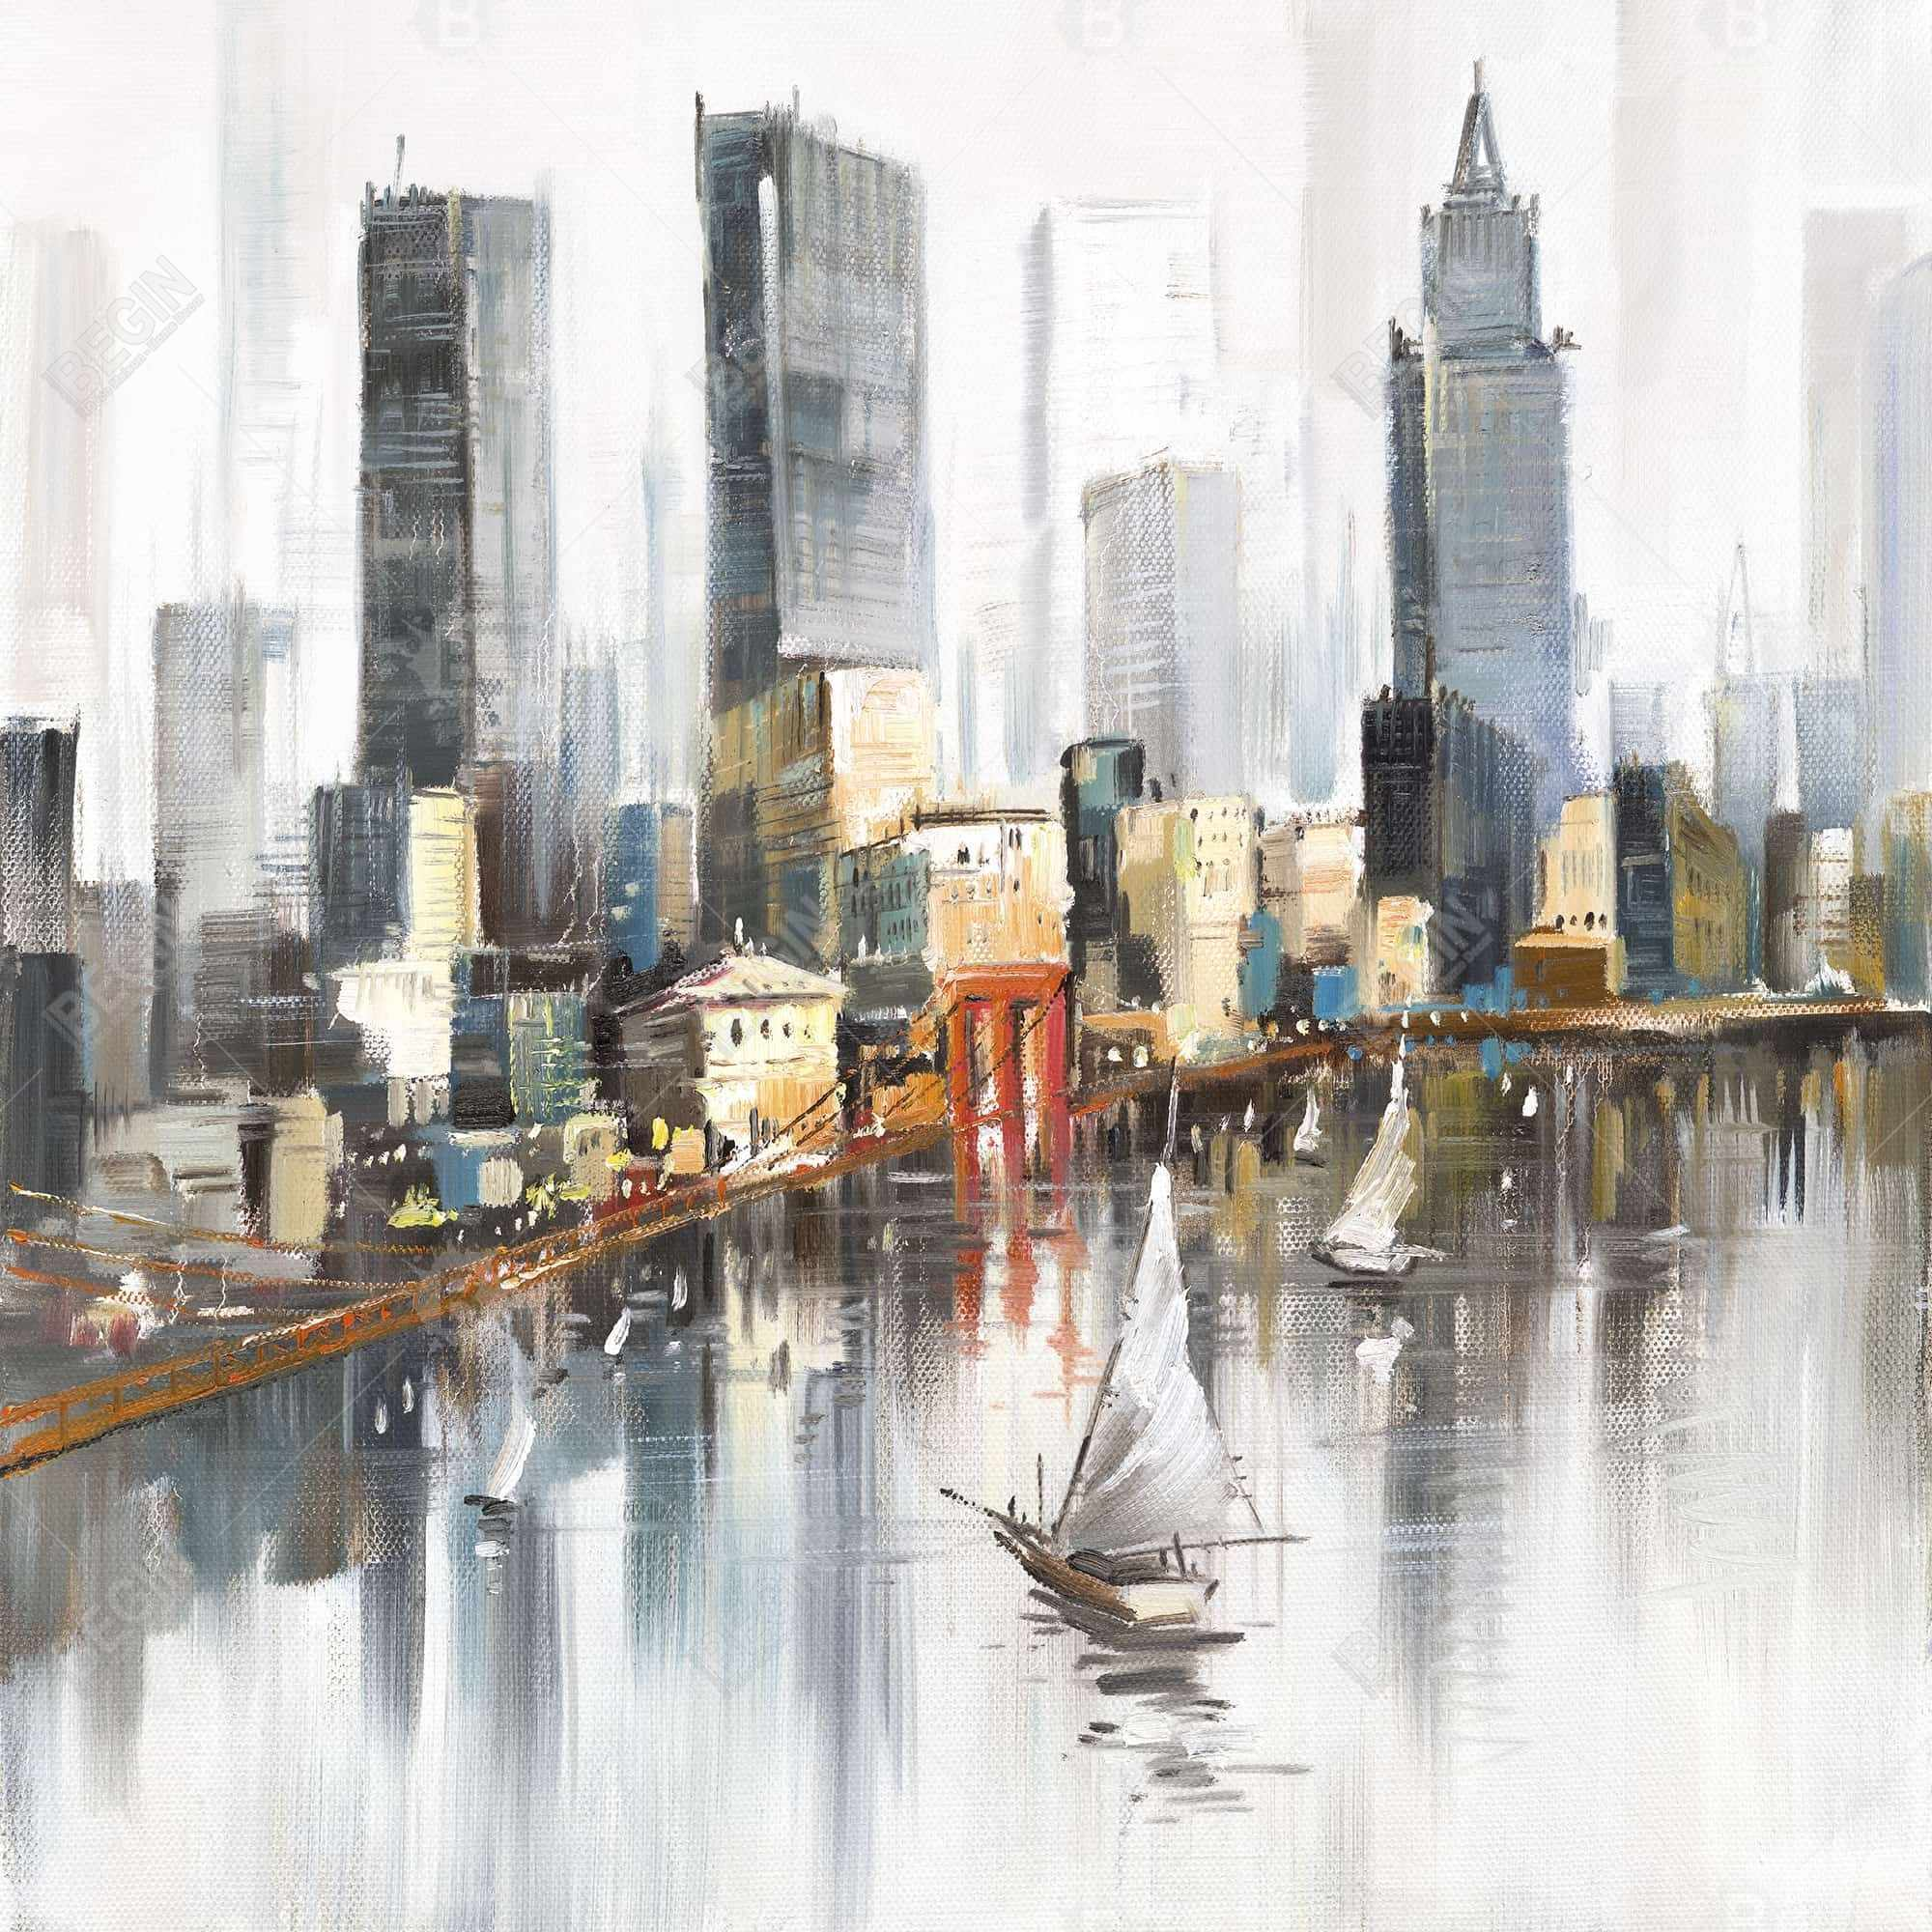 Watercolor style city with boats